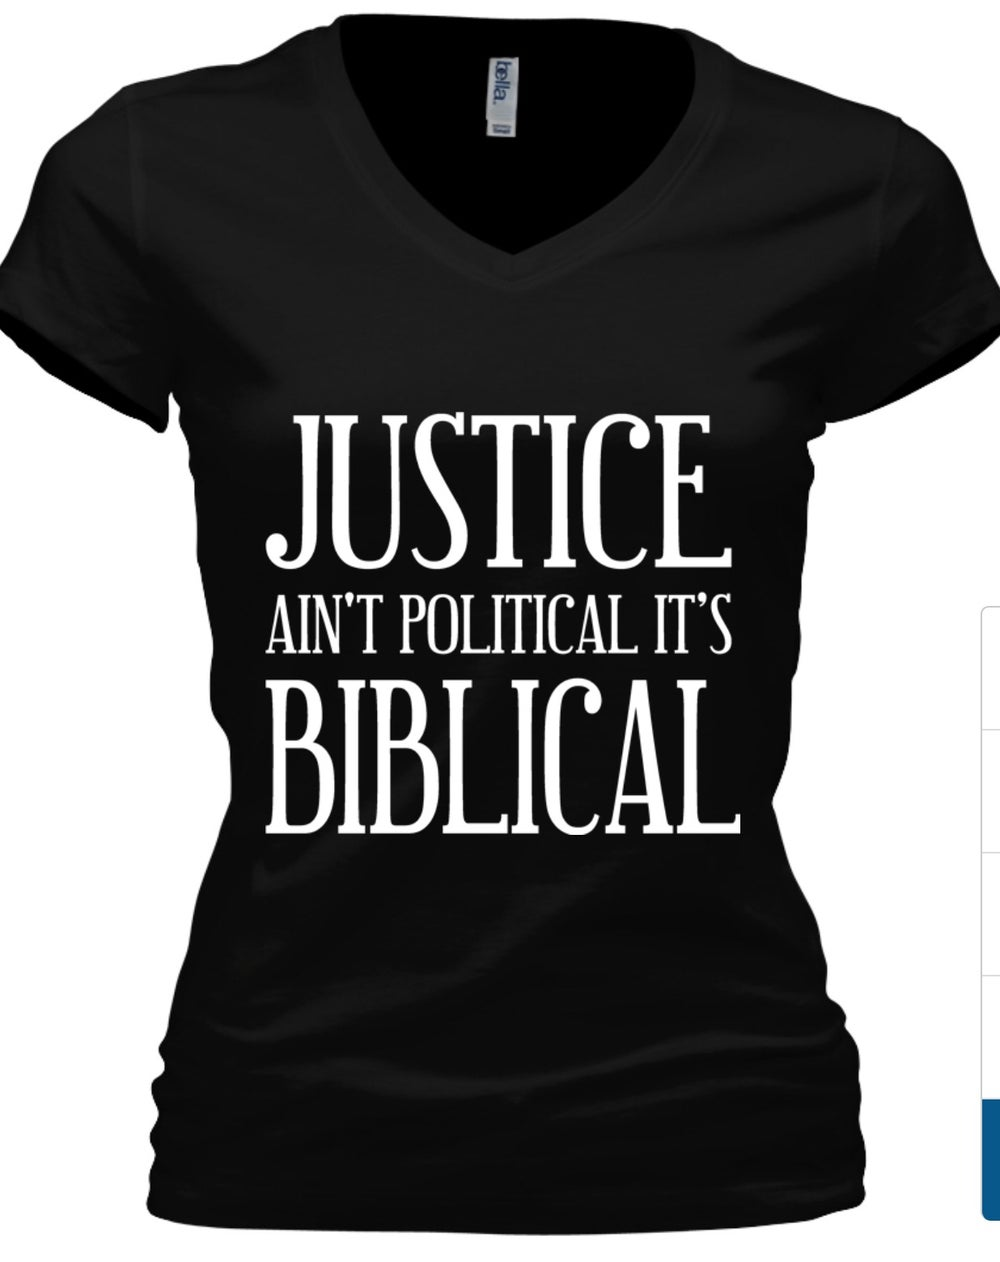 Image of JUSTICE AIN'T POLITICAL IT'S BIBLICAL WOMEN'S VNECK TSHIRT PLEASE ALLOW UP TO 14-16 BUSINESS DAYS TO